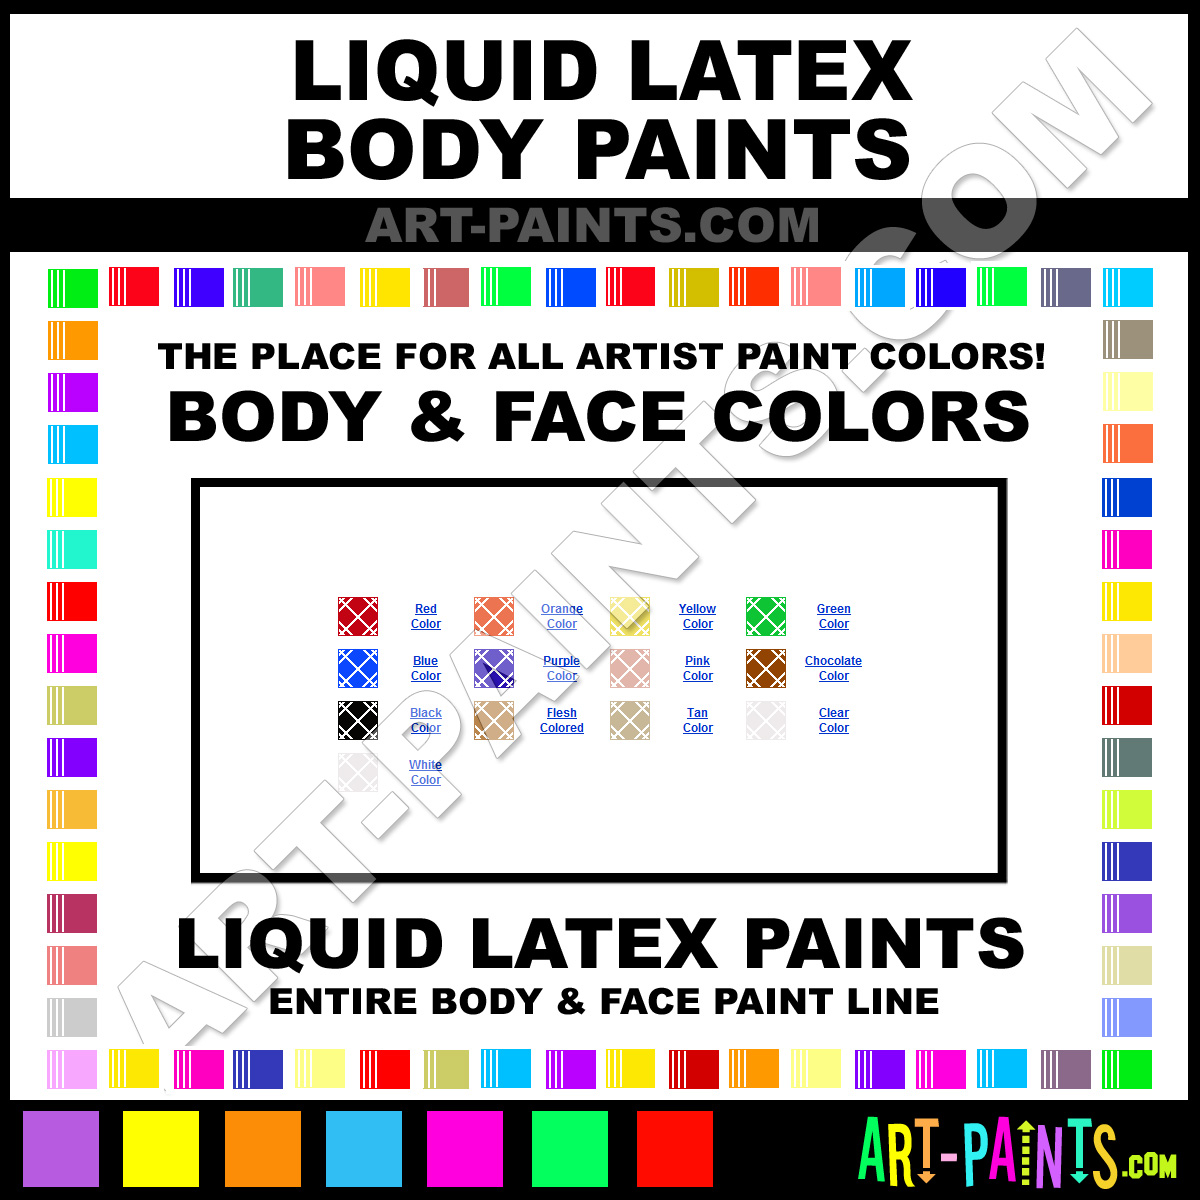 Liquid Latex Body Paints